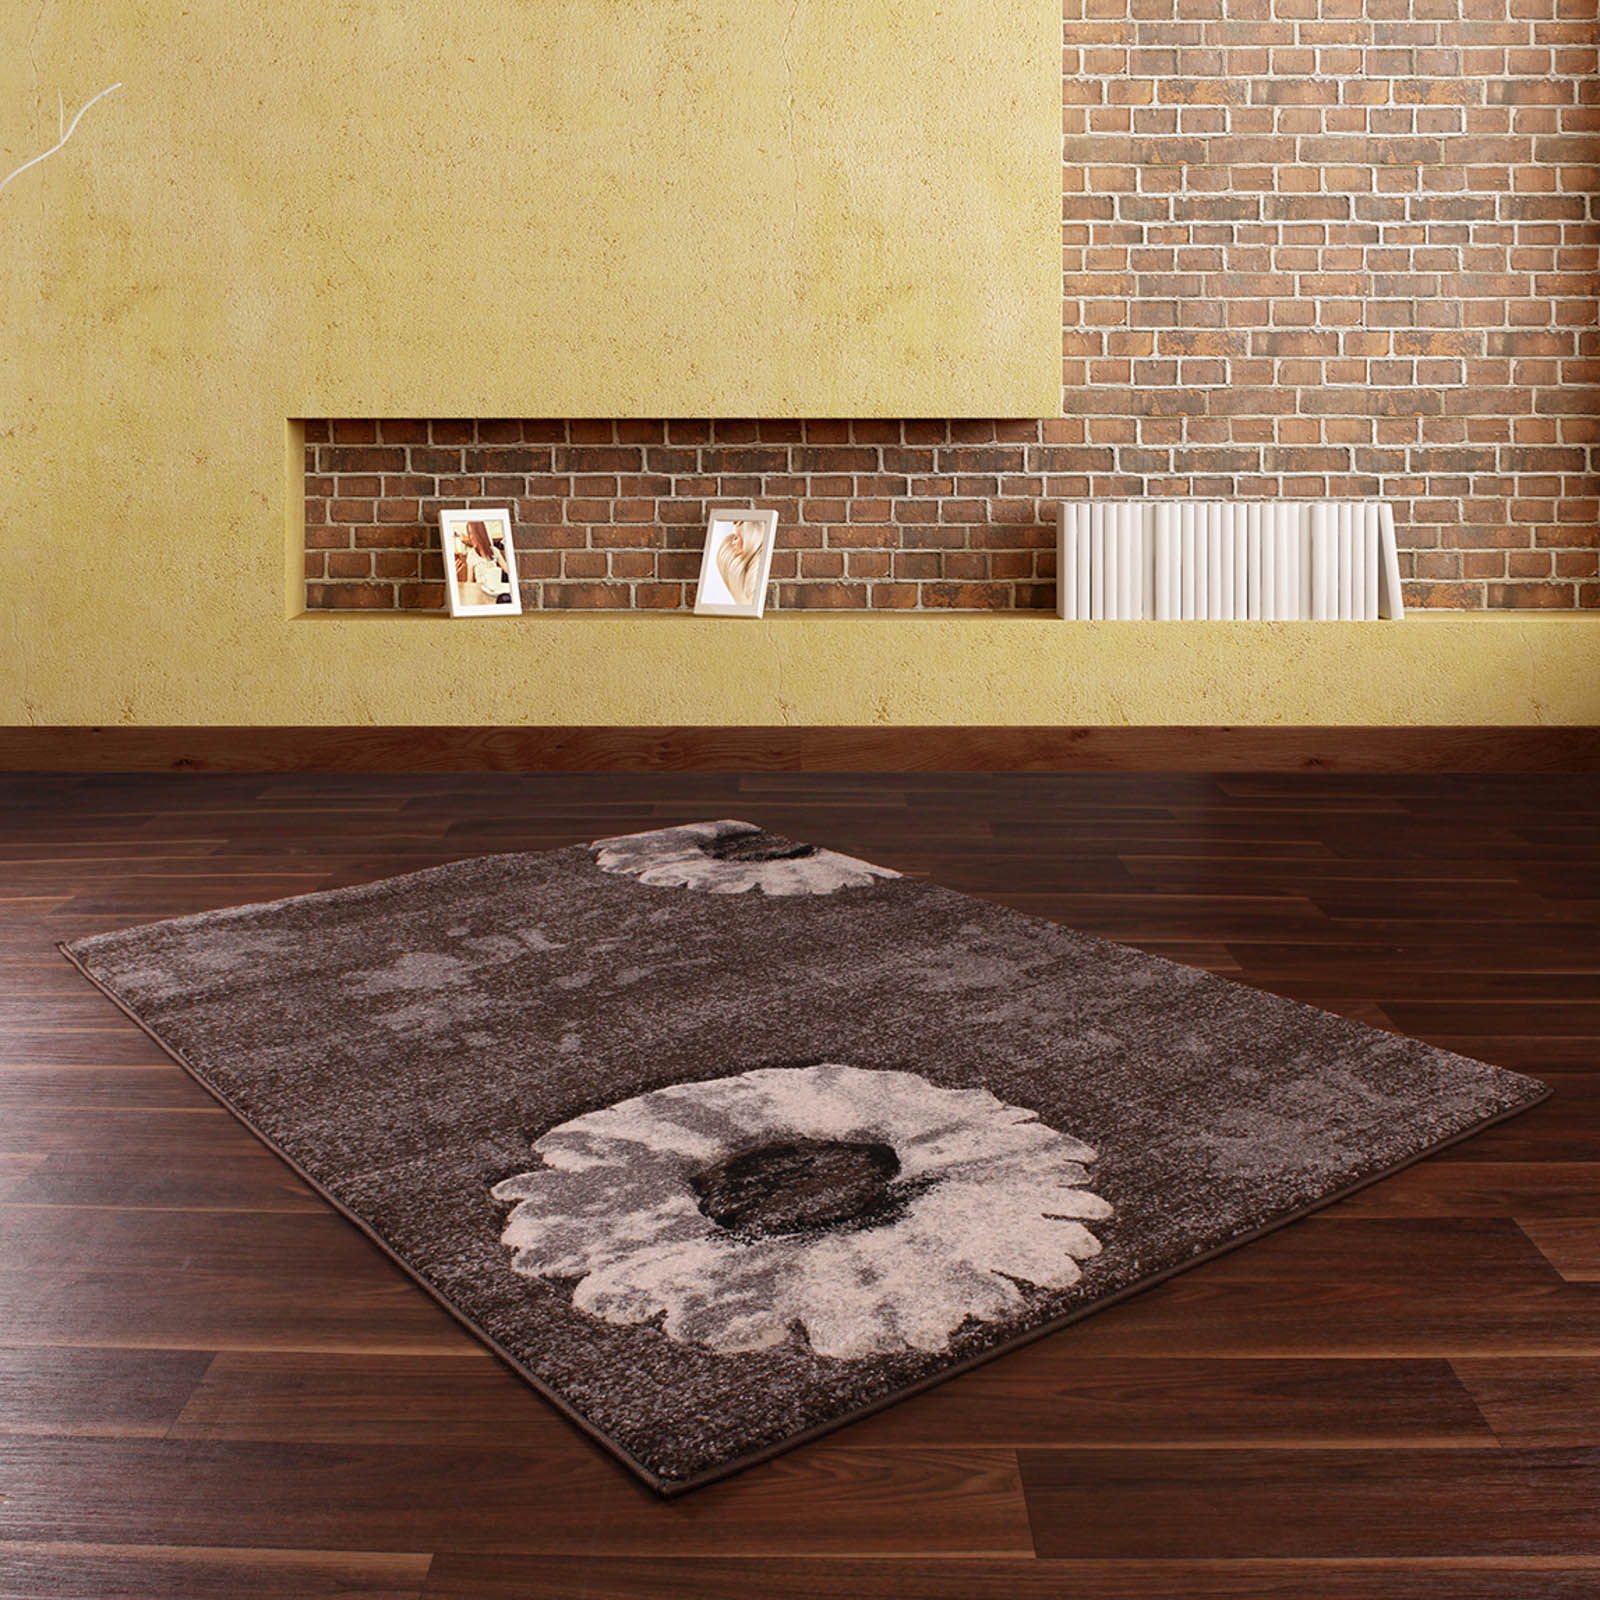 Bali Rugs 877 in Brown